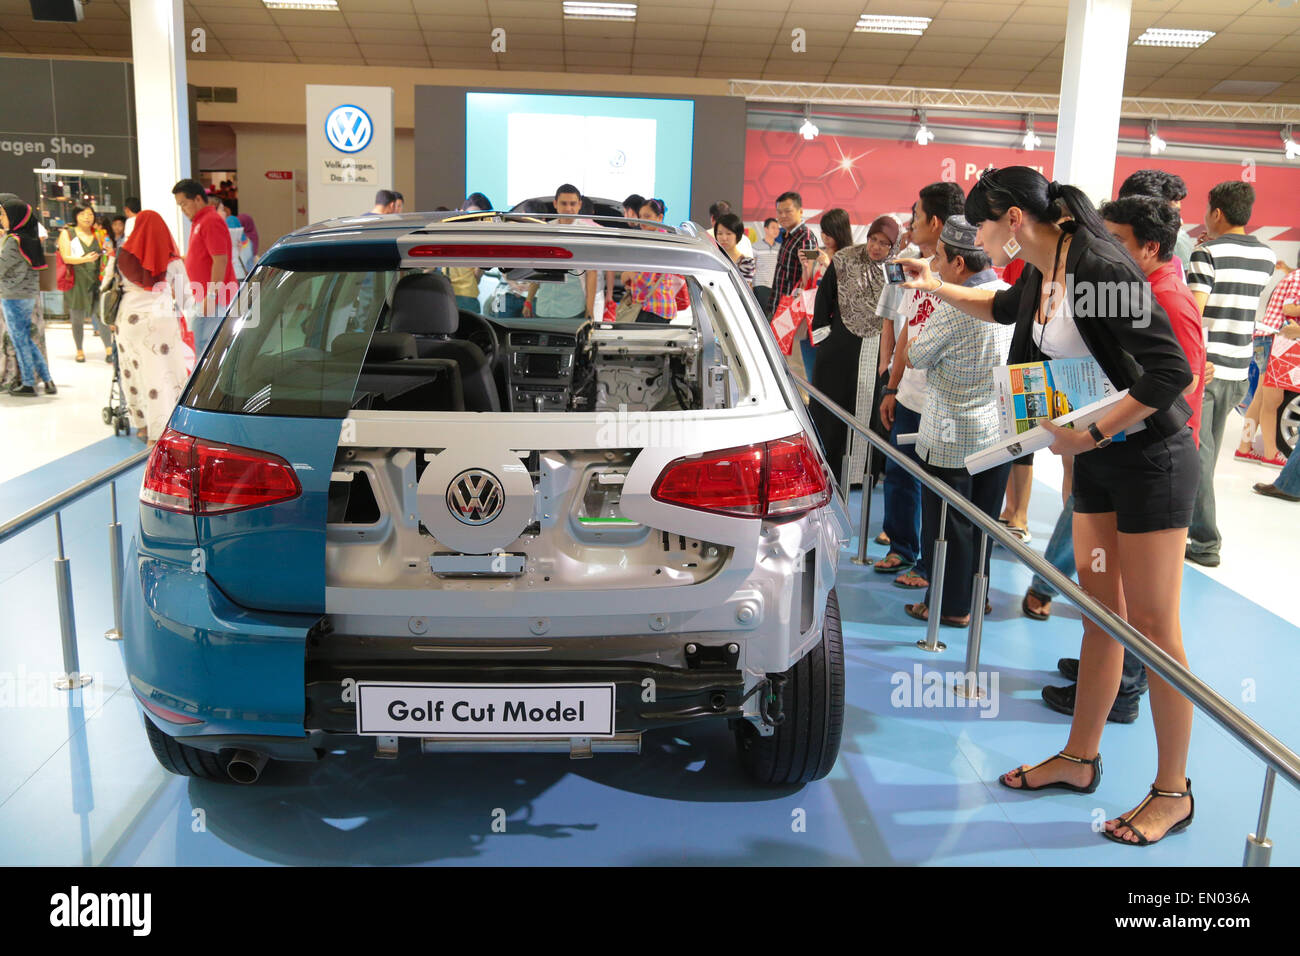 Gorgeous lady snaping picture of VW Golf cut model display at KL International Motorshow 2013. - Stock Image